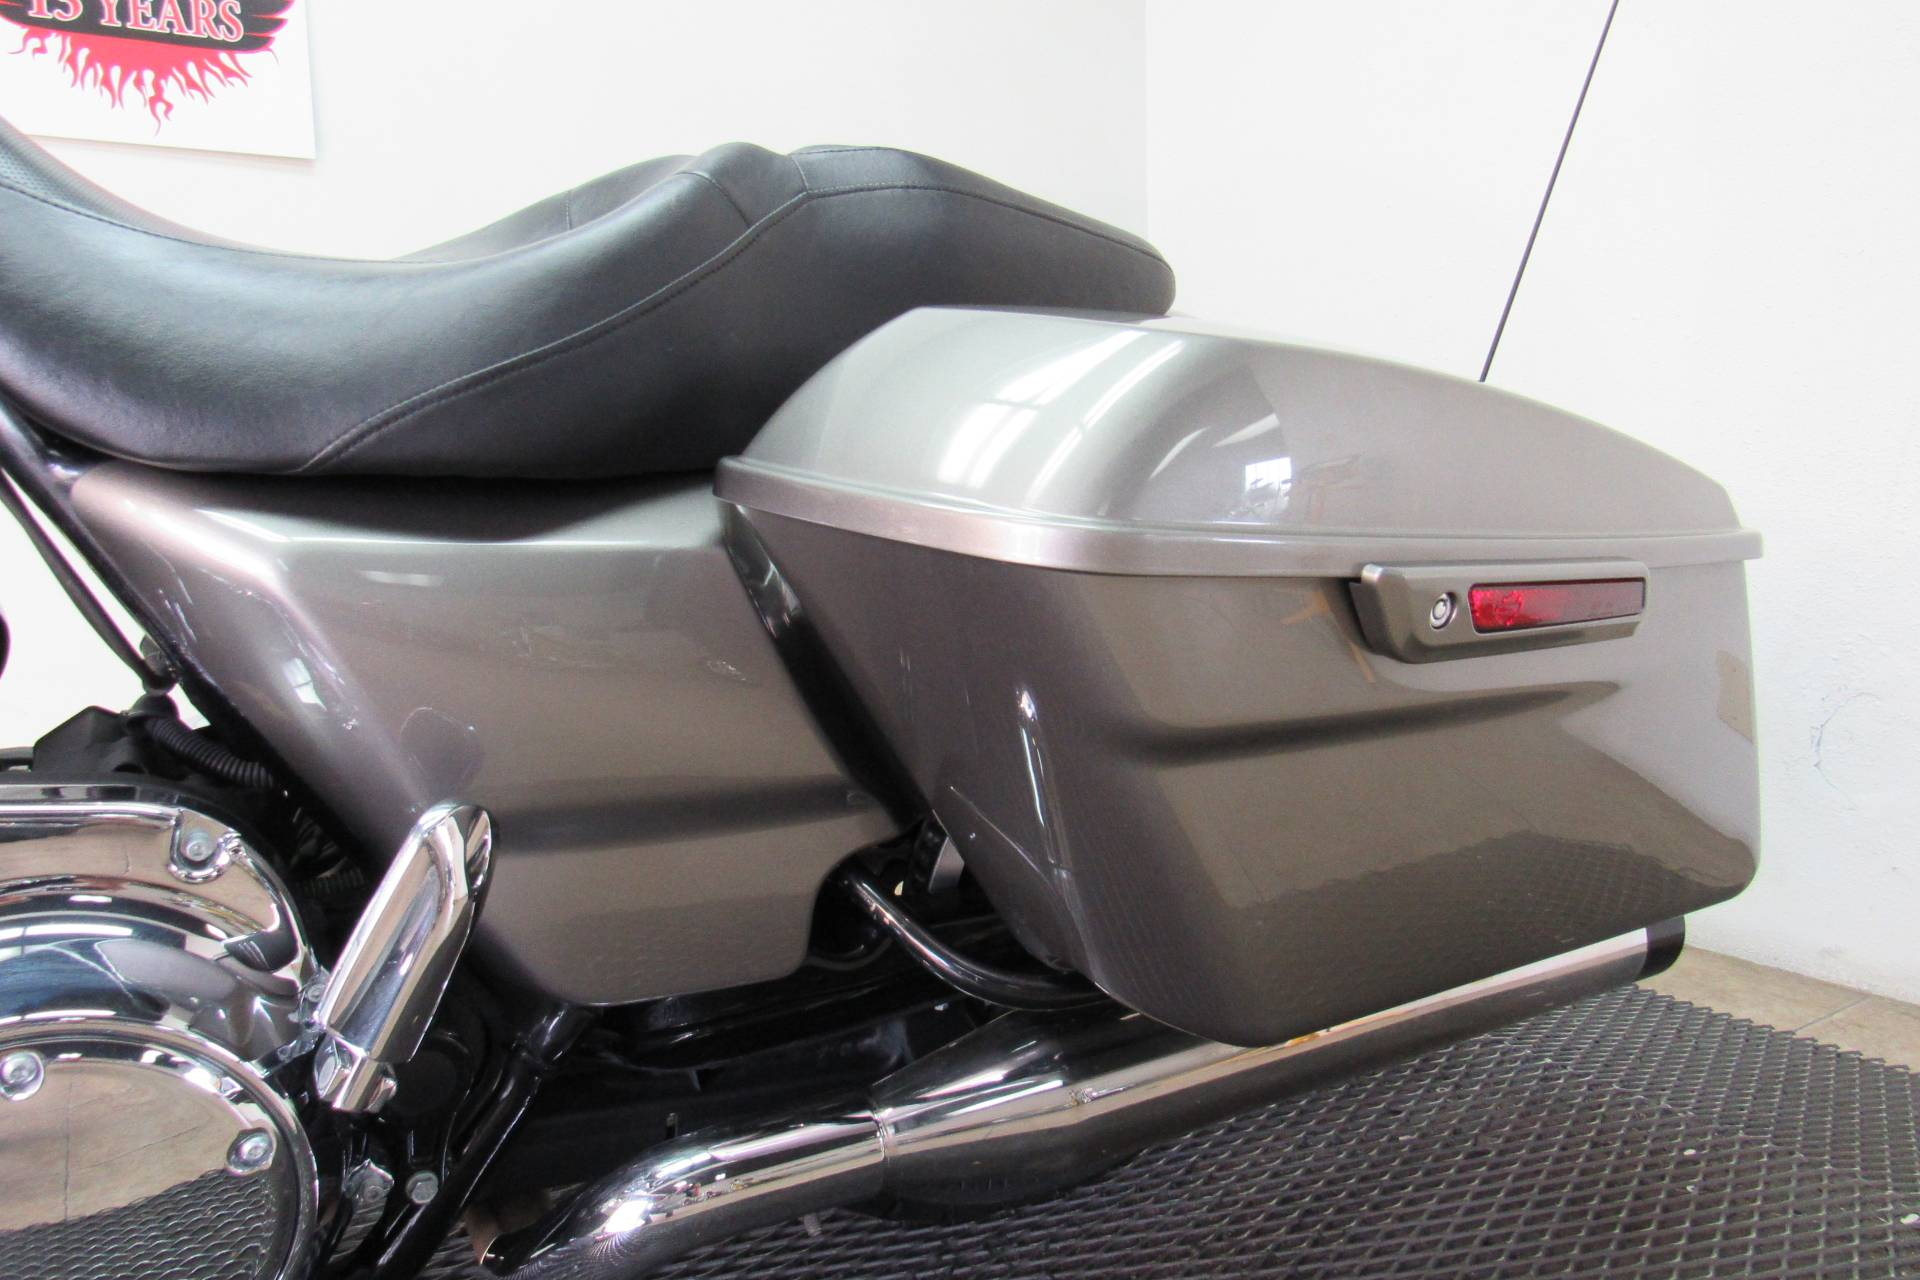 2014 Harley-Davidson Street Glide® Special in Temecula, California - Photo 26